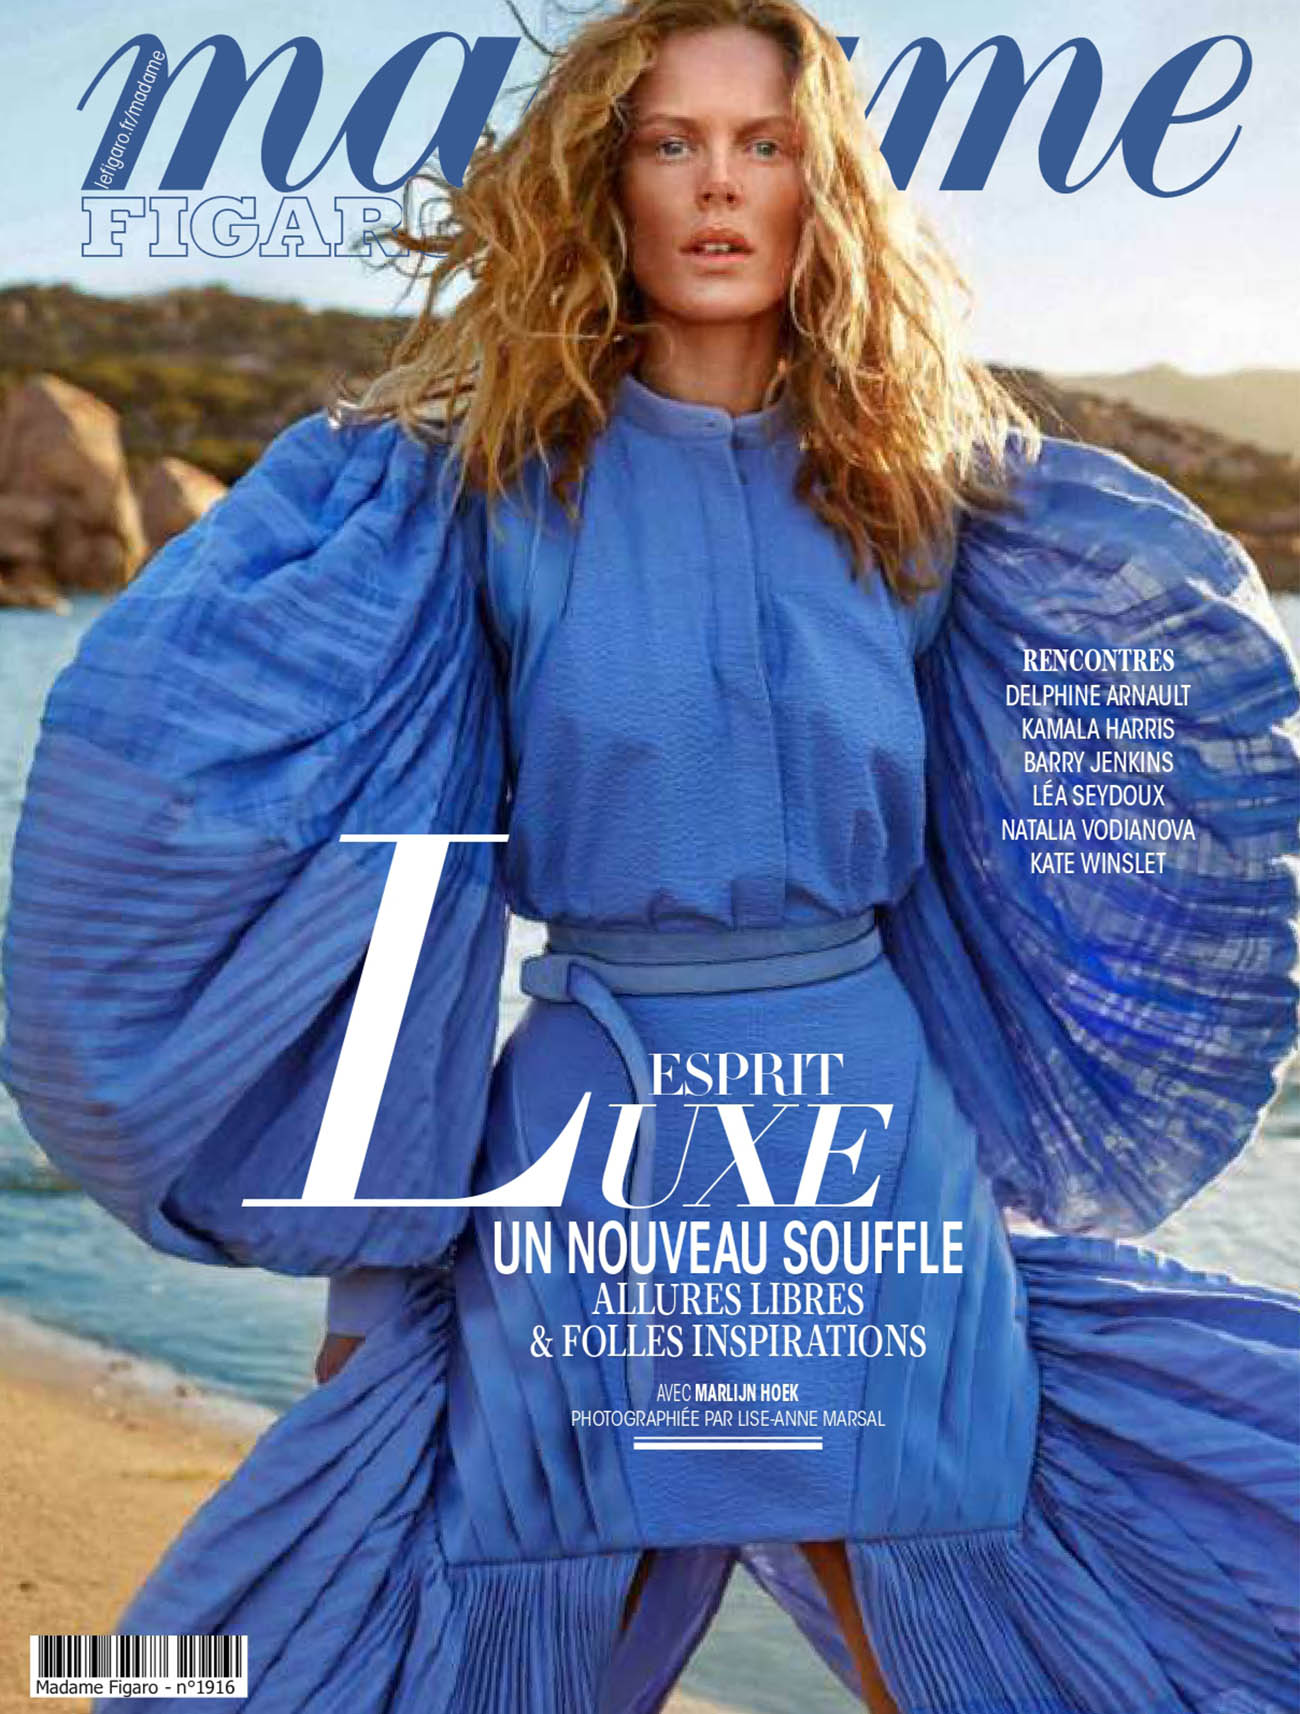 Marlijn Hoek covers Madame Figaro May 14th, 2021 by Lise-Anne Marsal